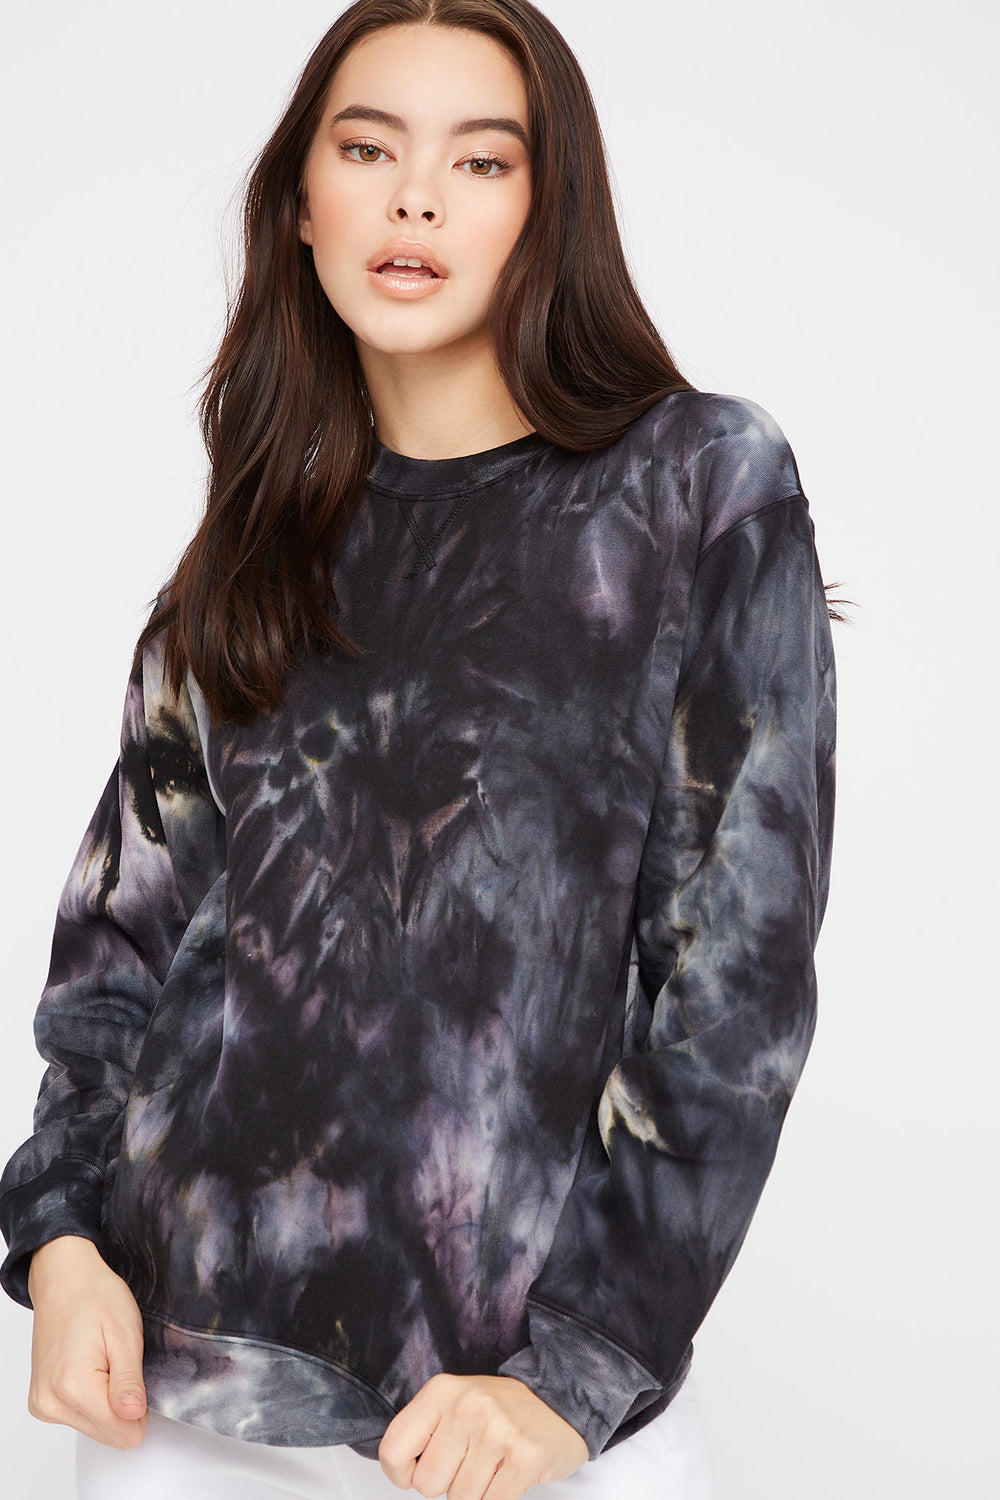 Tie Dye Boyfriend Crew Neck Sweater Black with White